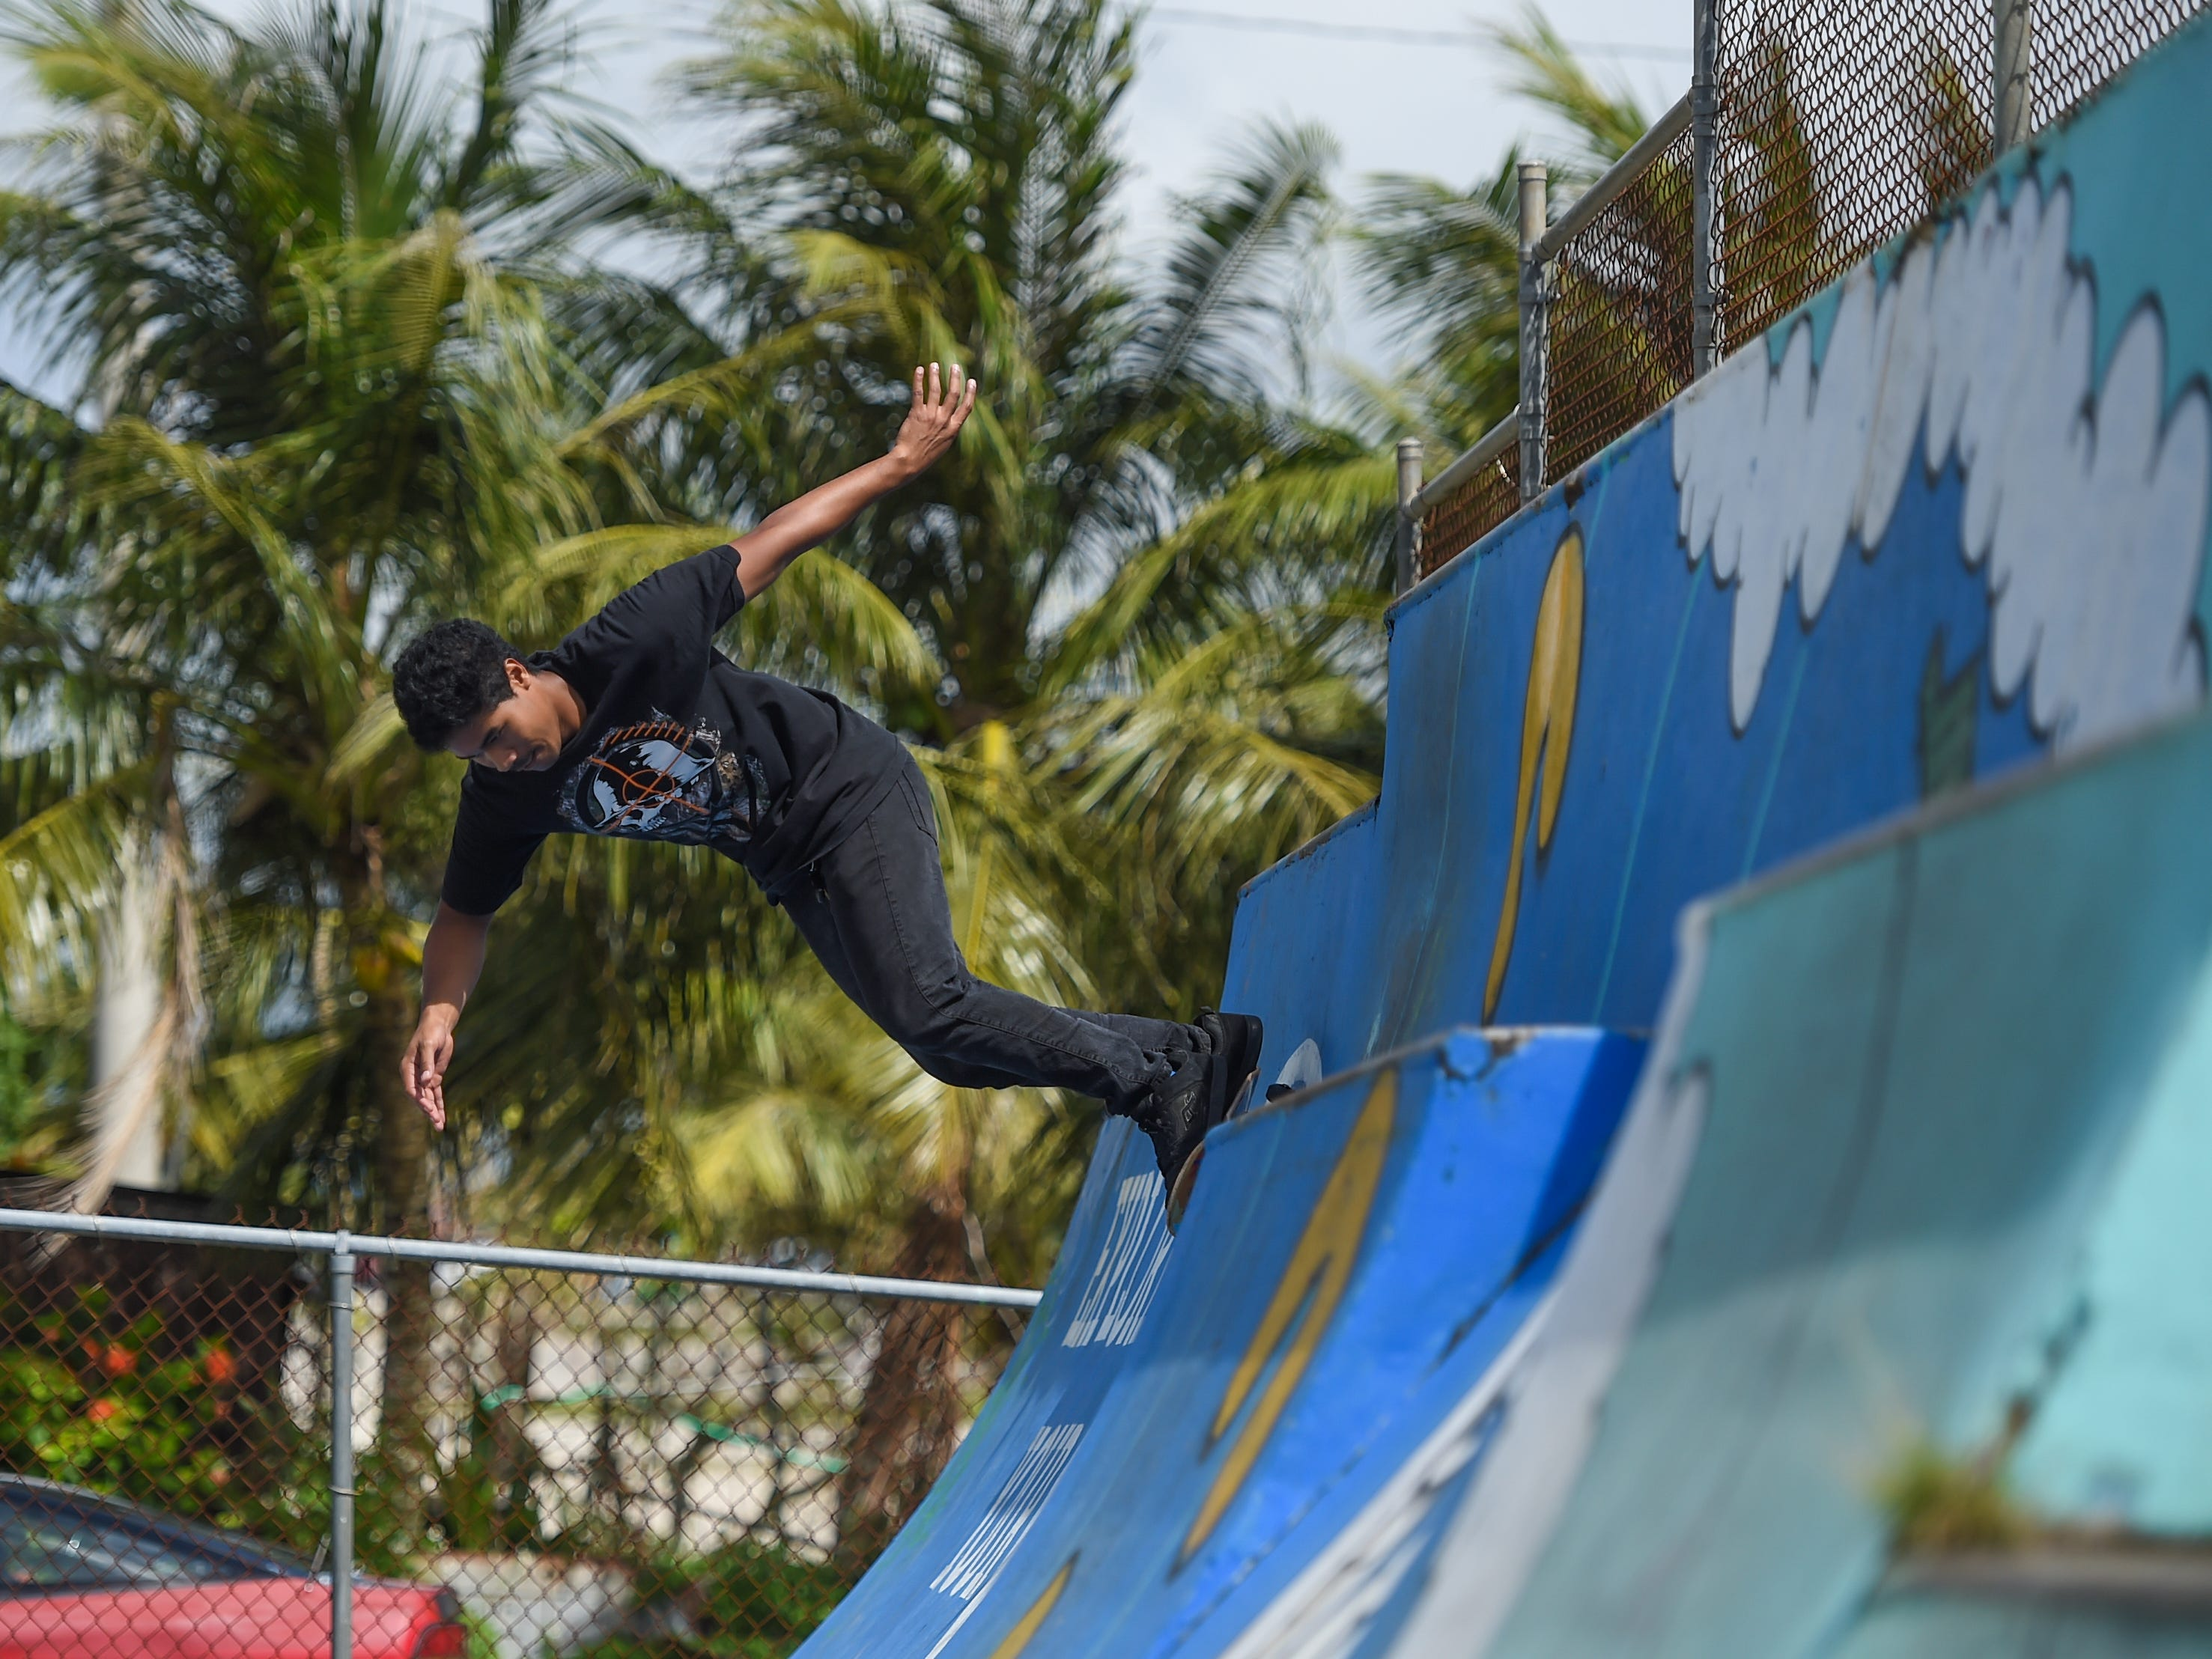 Local skaters get a Sunday skate session in at the Dededo Skatepark on Feb. 3, 2019.